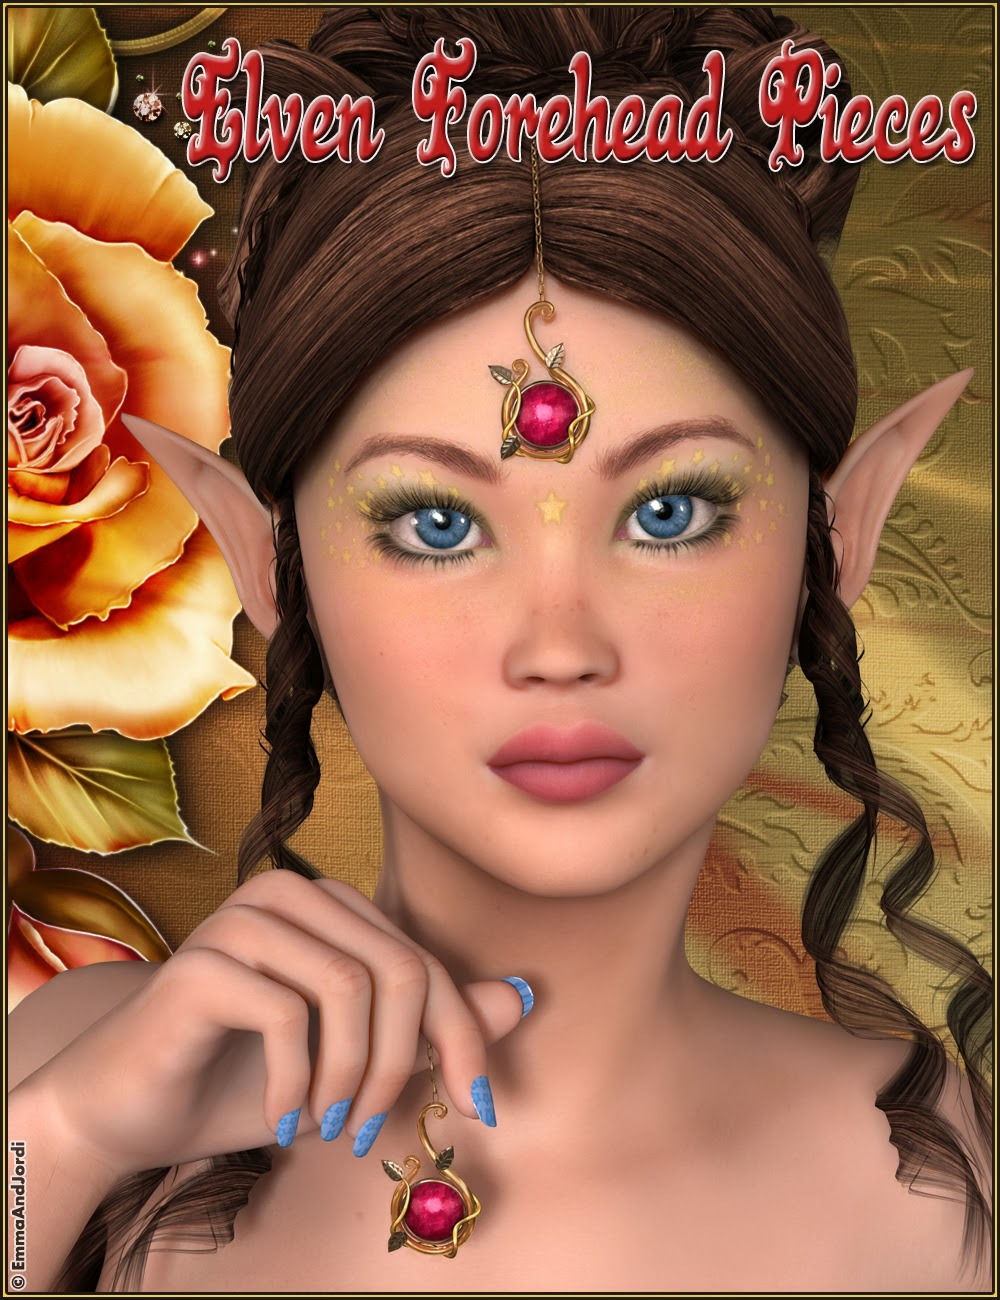 http://www.daz3d.com/elven-forehead-pieces-for-any-figure